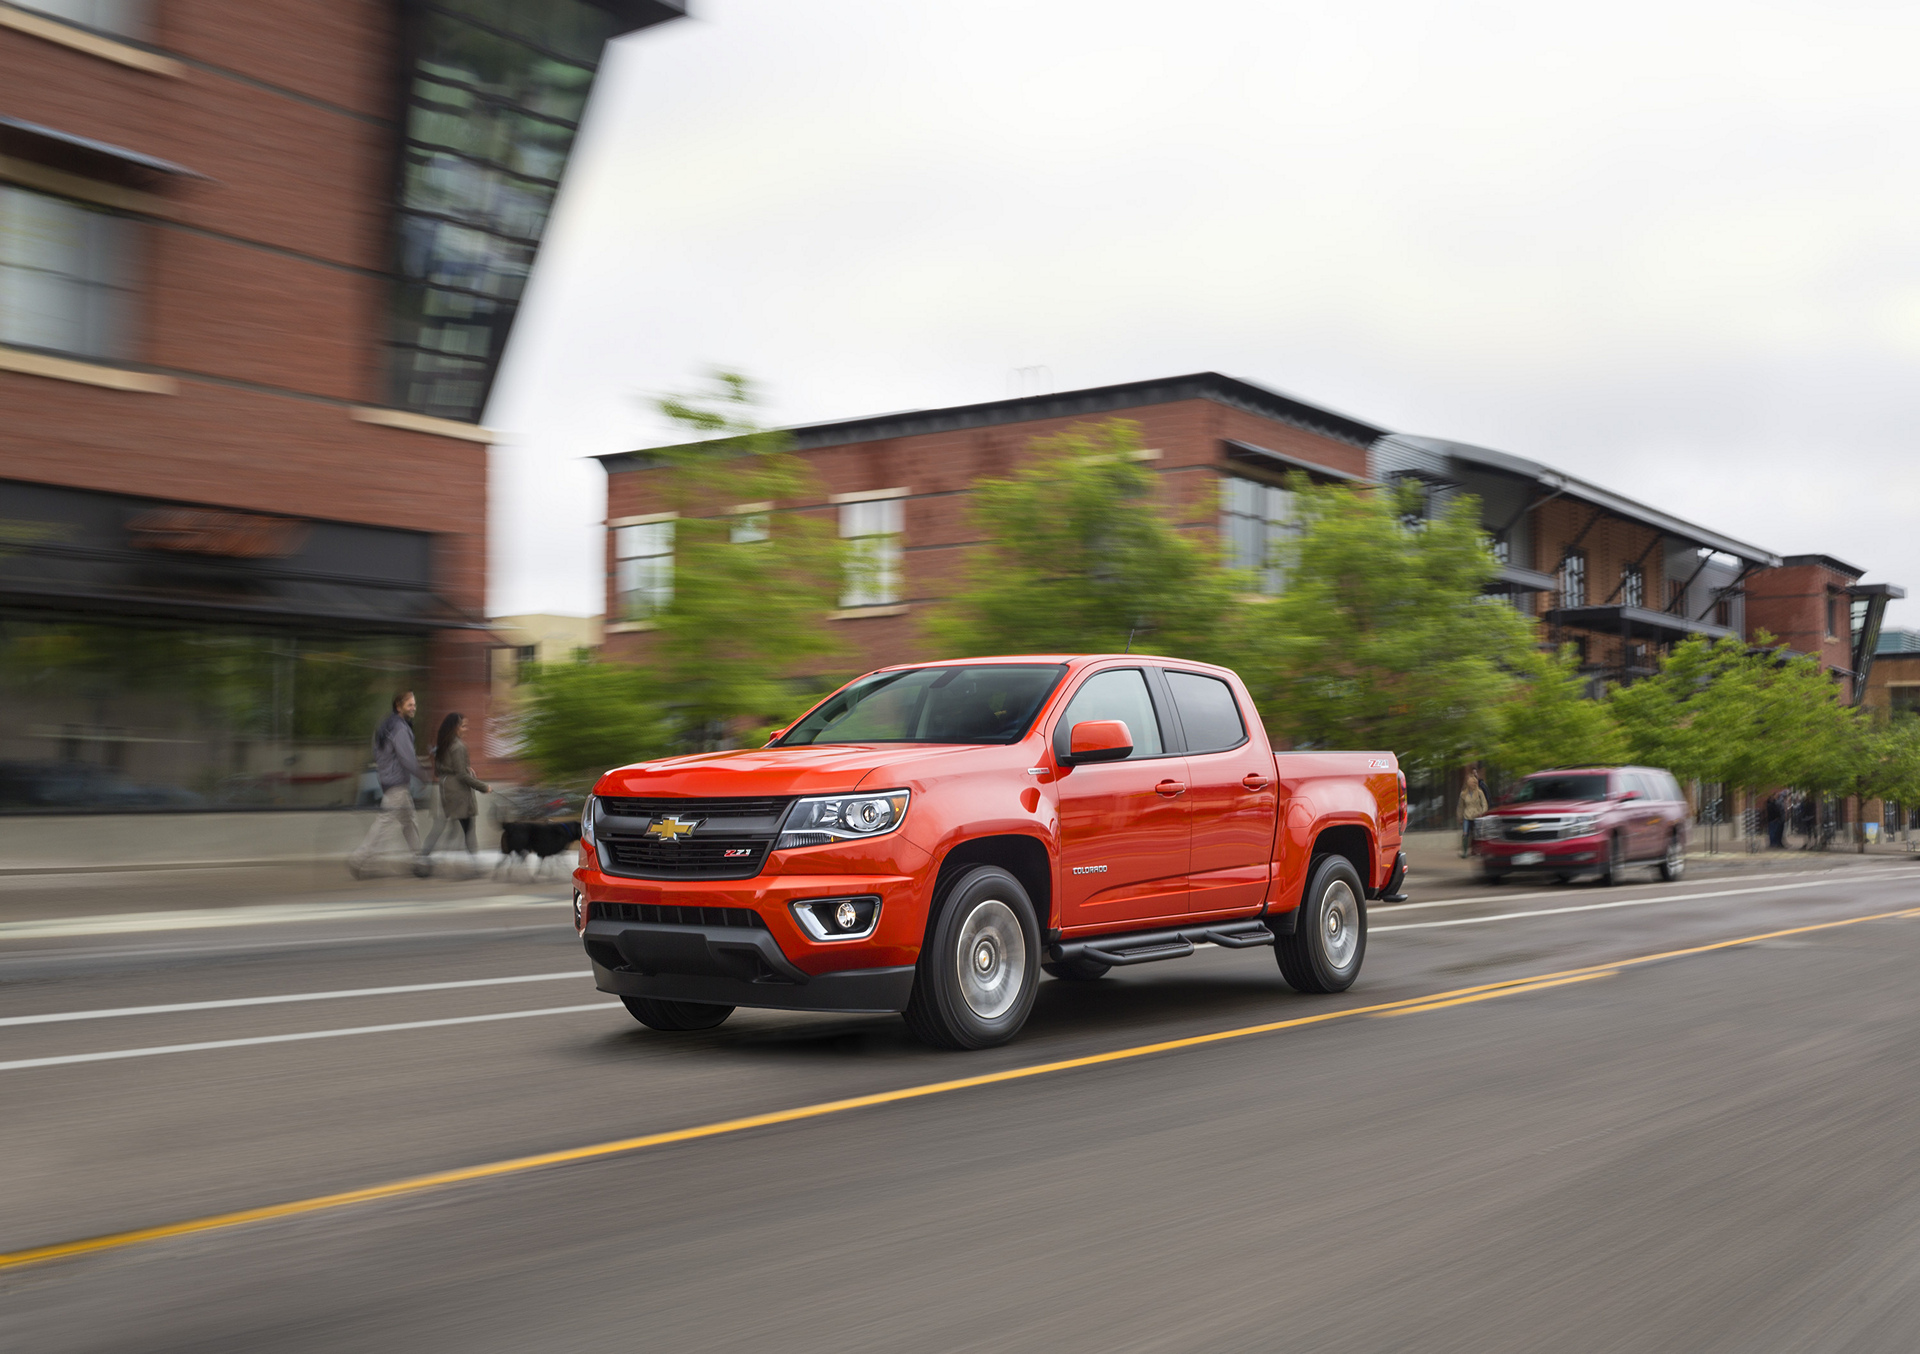 2016 Chevrolet Colorado 2.8L Duramax Turbo Diesel © General Motors